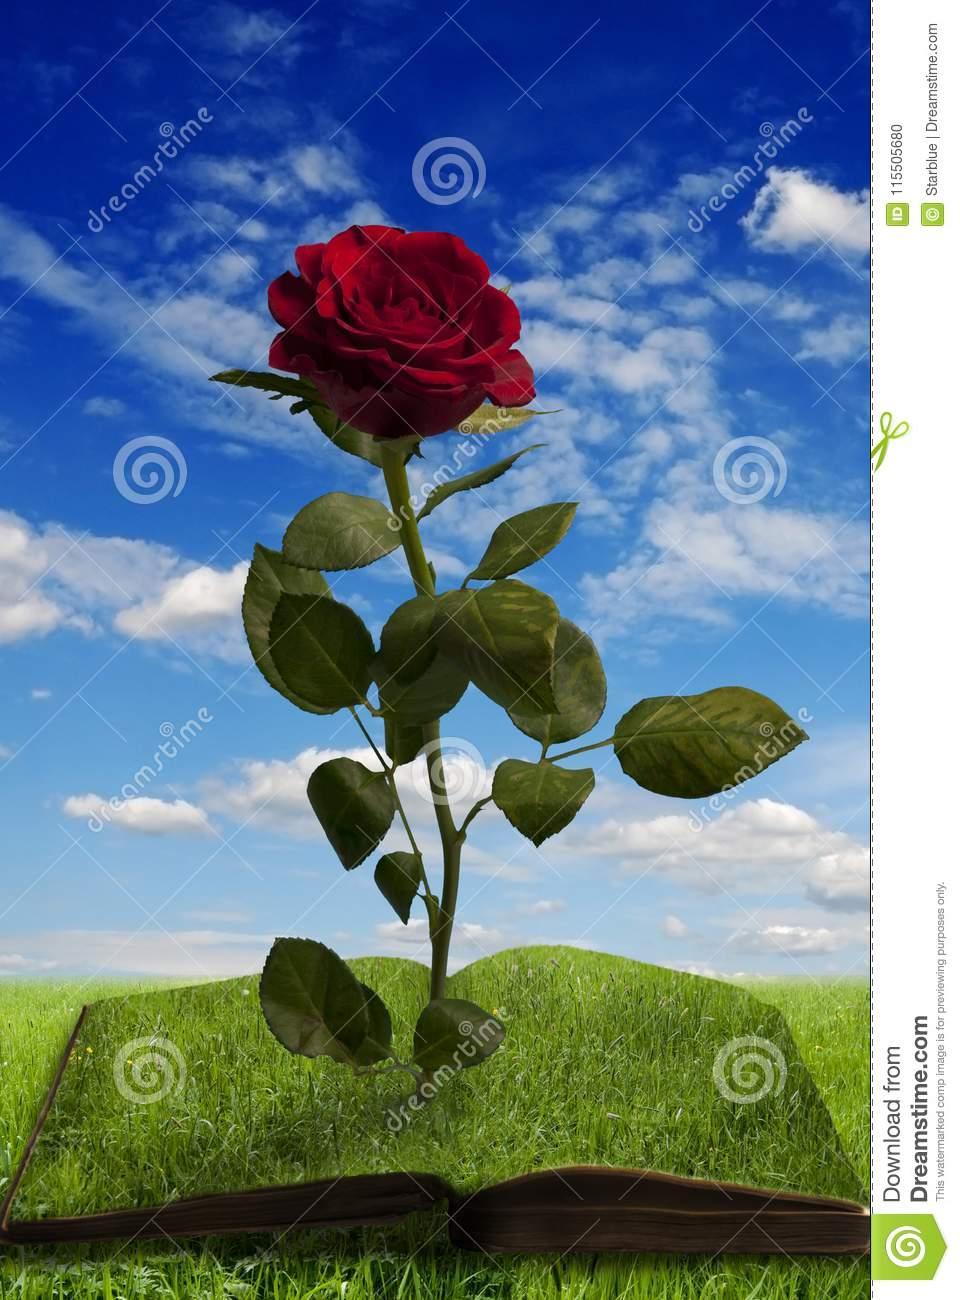 Magic book with a rose in summer landscape